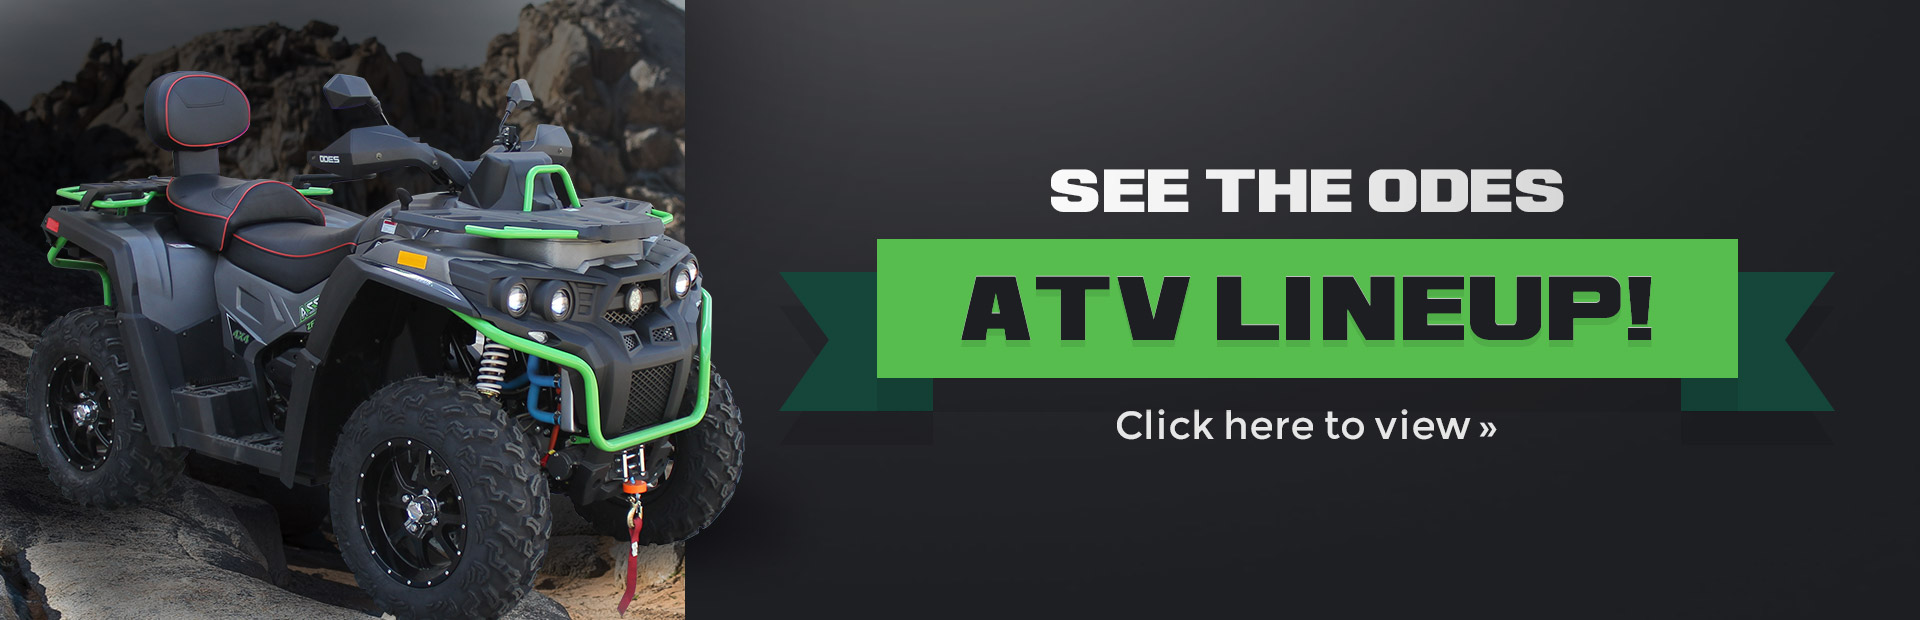 2019 ODES ATVs: See the ODES ATV lineup here!